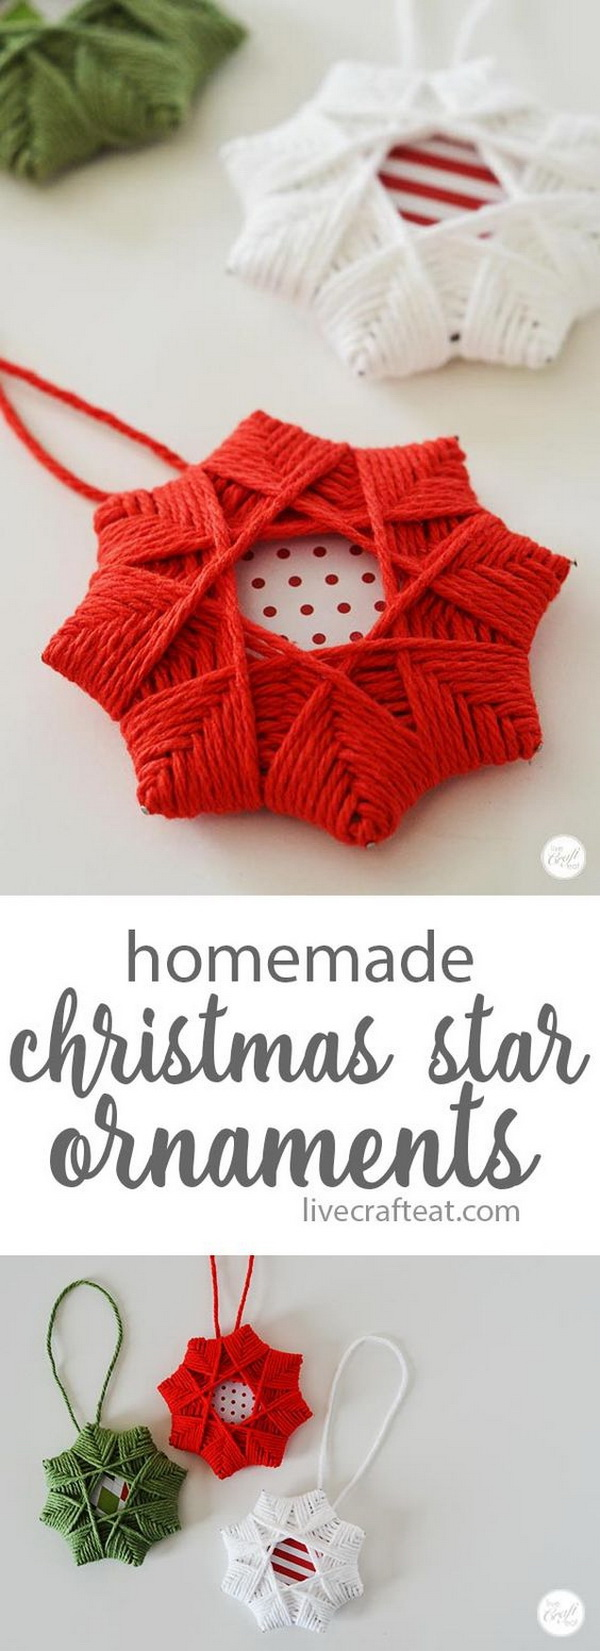 Homemade Christmas Tree Star Ornament With Yarn. Easy and Fun DIY Christmas crafts for You and Your Kids to Have Fun.